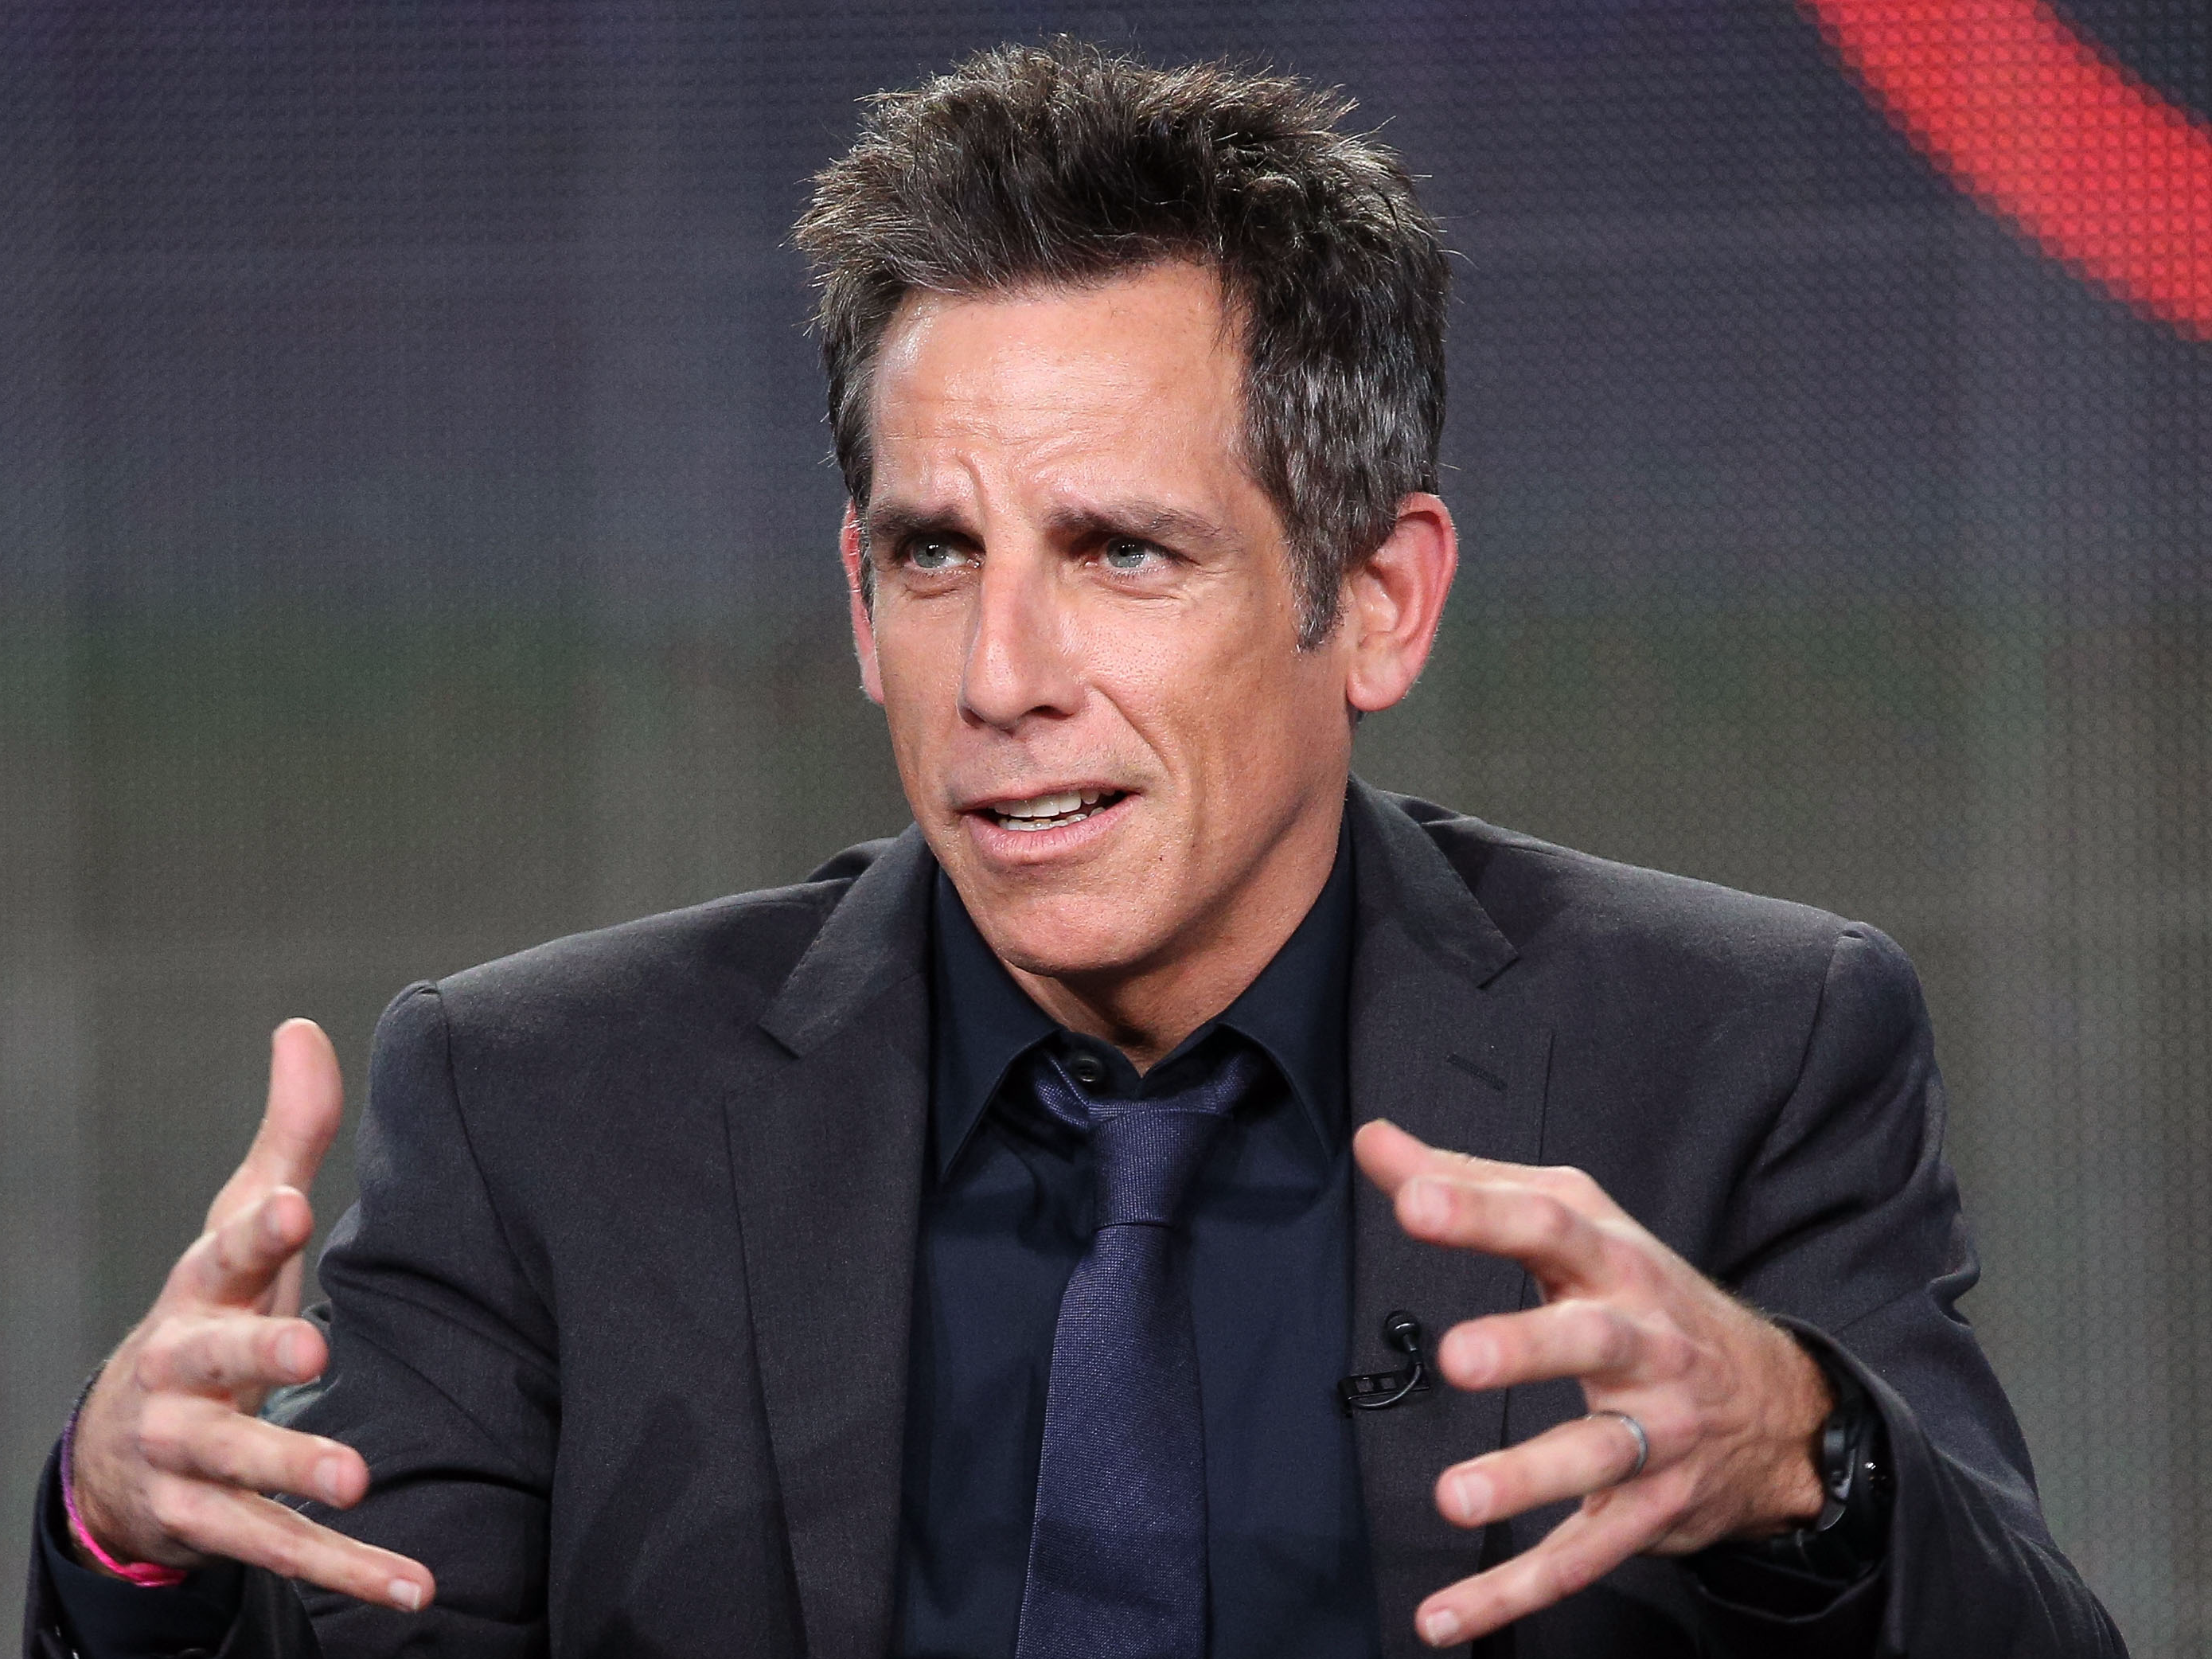 ben-stiller-reveals-he-was-diagnosed-with-prostate-cancer.jpg